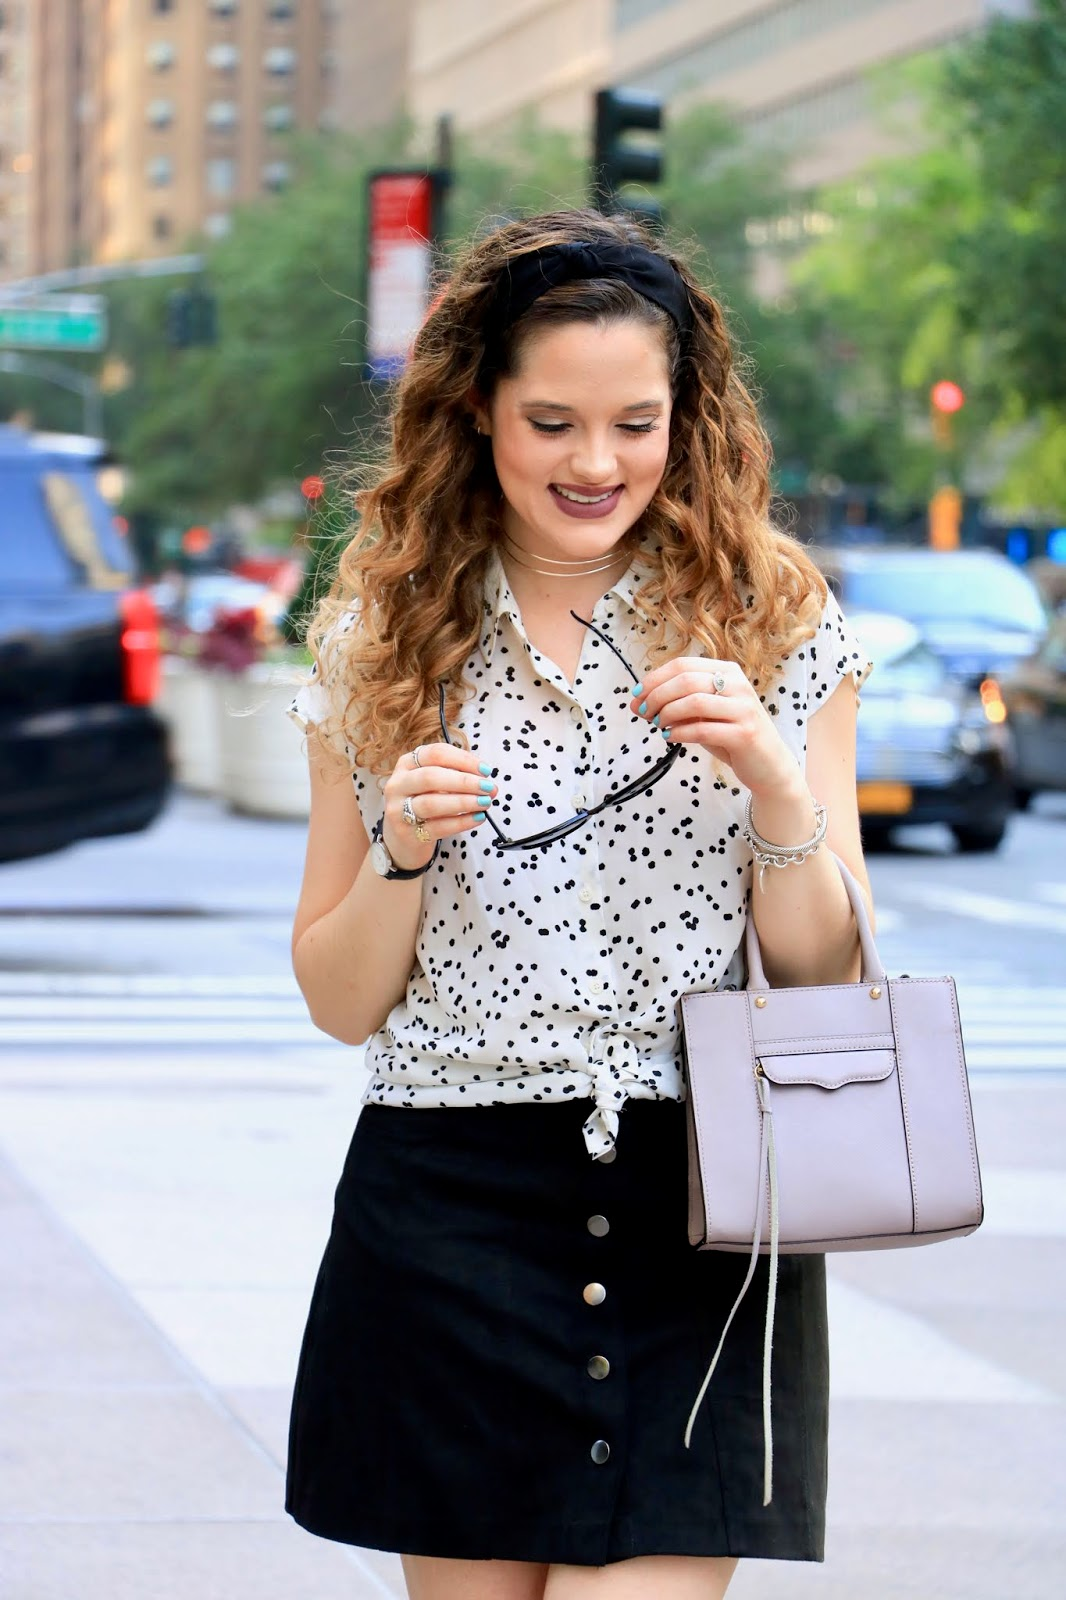 Nyc fashion blogger Kathleen Harper showing how to wear a tied a blouse